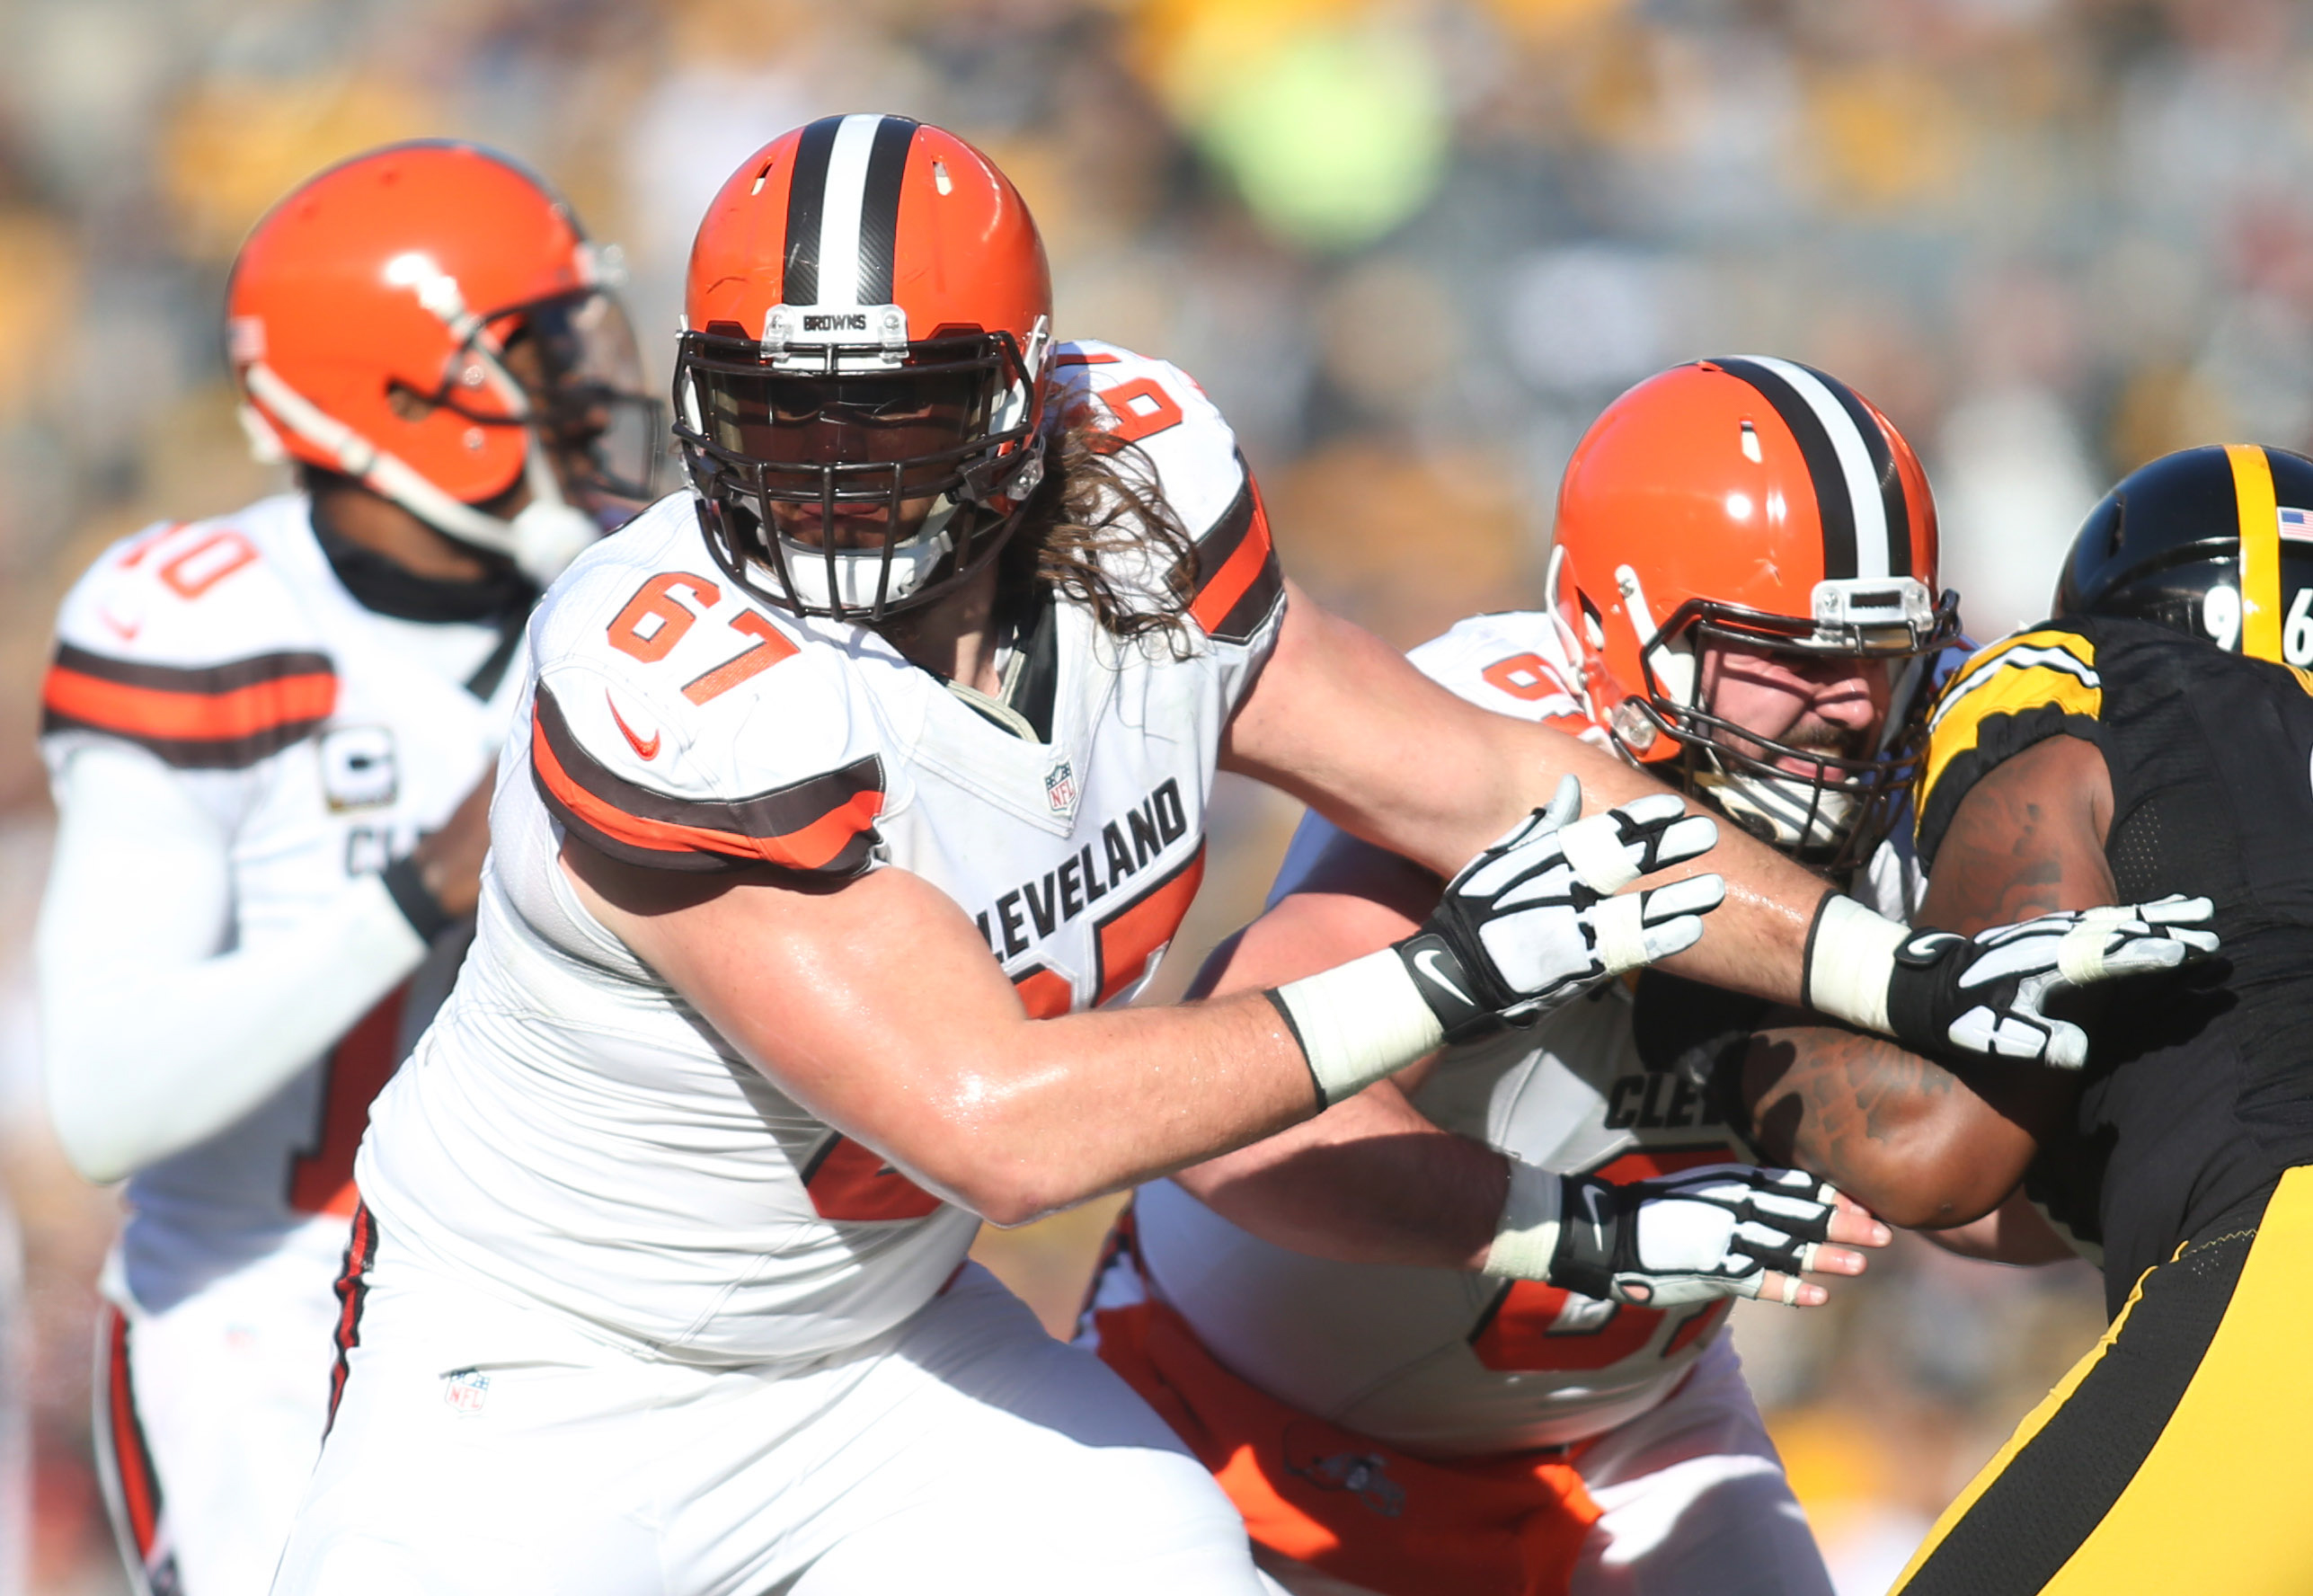 Cleveland Browns 2016 offensive line review and 2017 needs